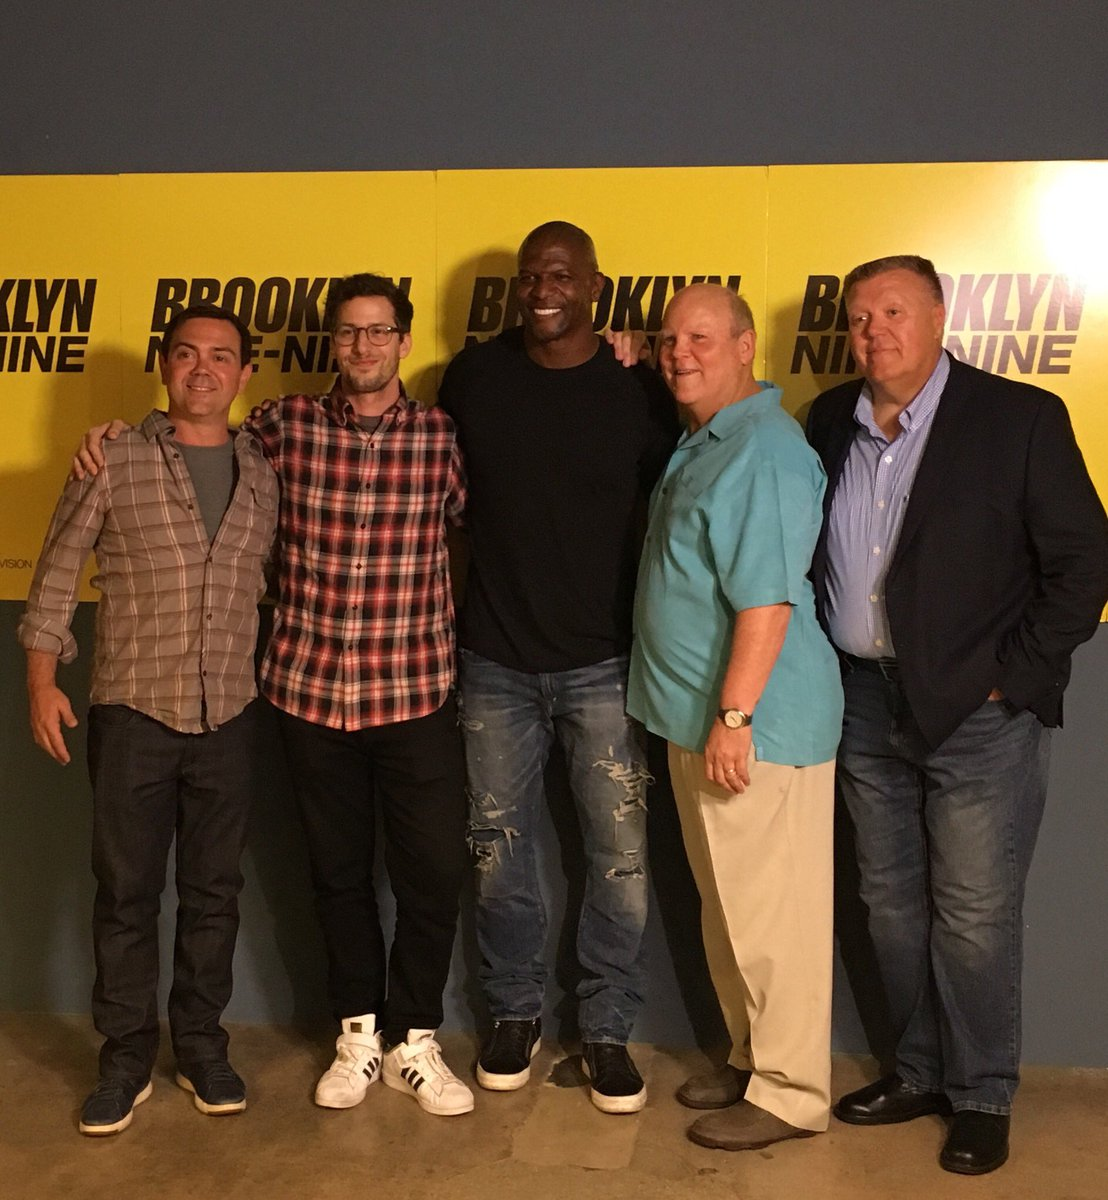 NINE-NINE! We're here for the #Brooklyn99 panel at #UTVFYC.🚨